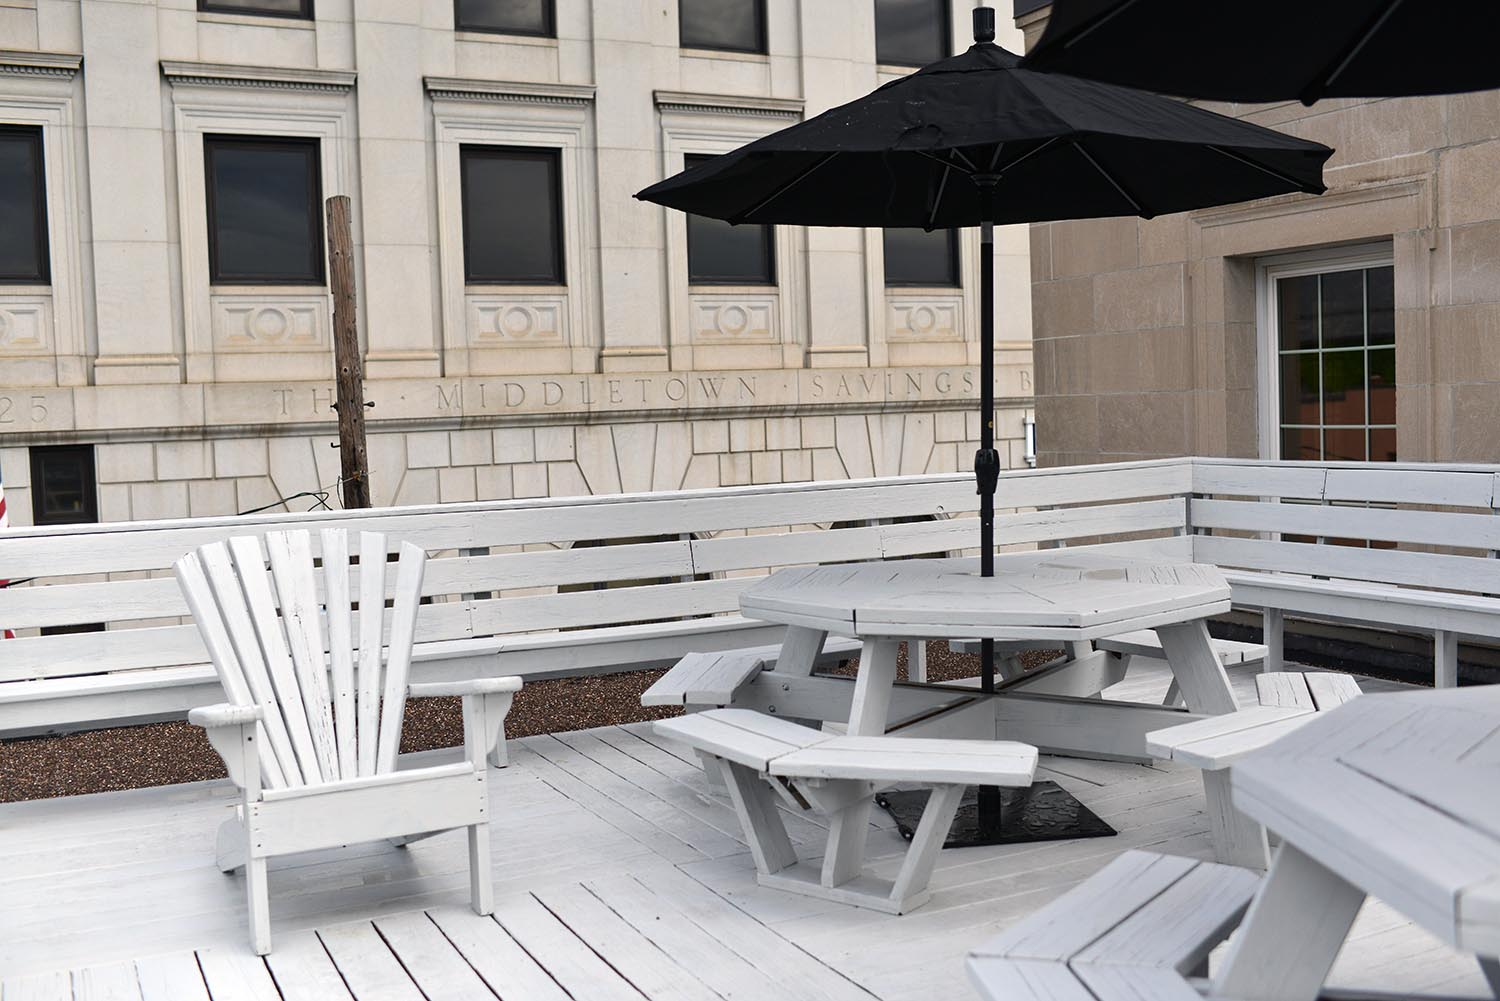 The new building offers employees and guests a rooftop deck and picnic area.